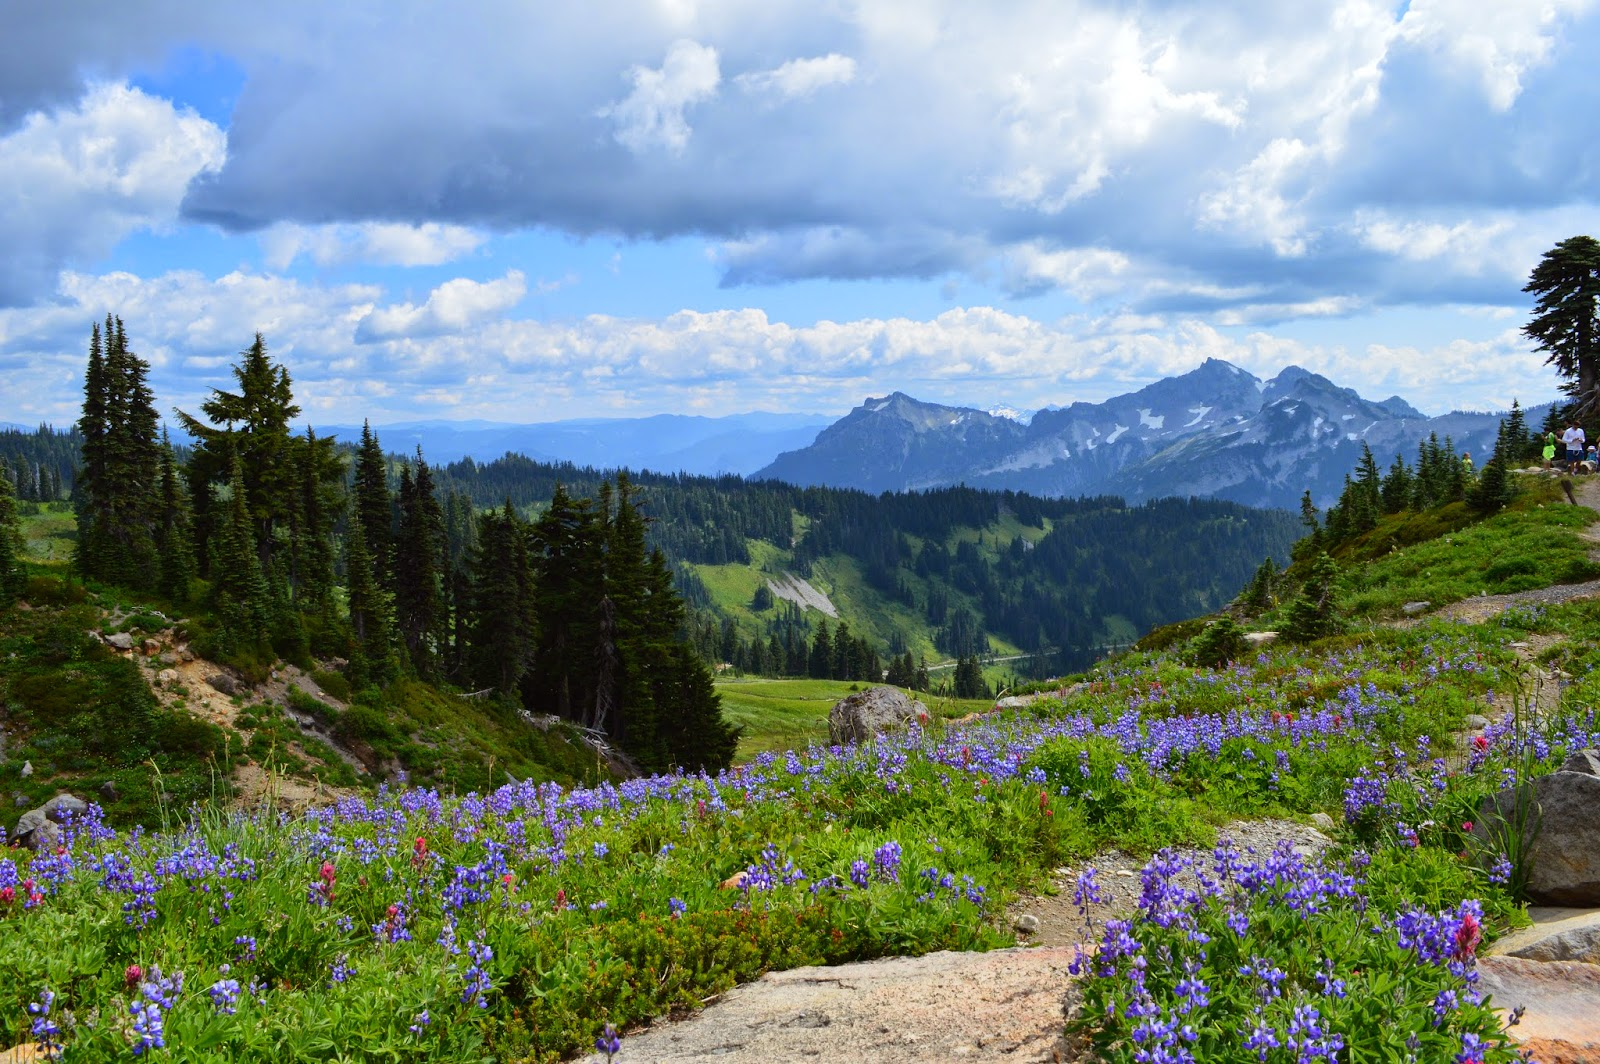 Wildflowers - Mount Rainier National Park